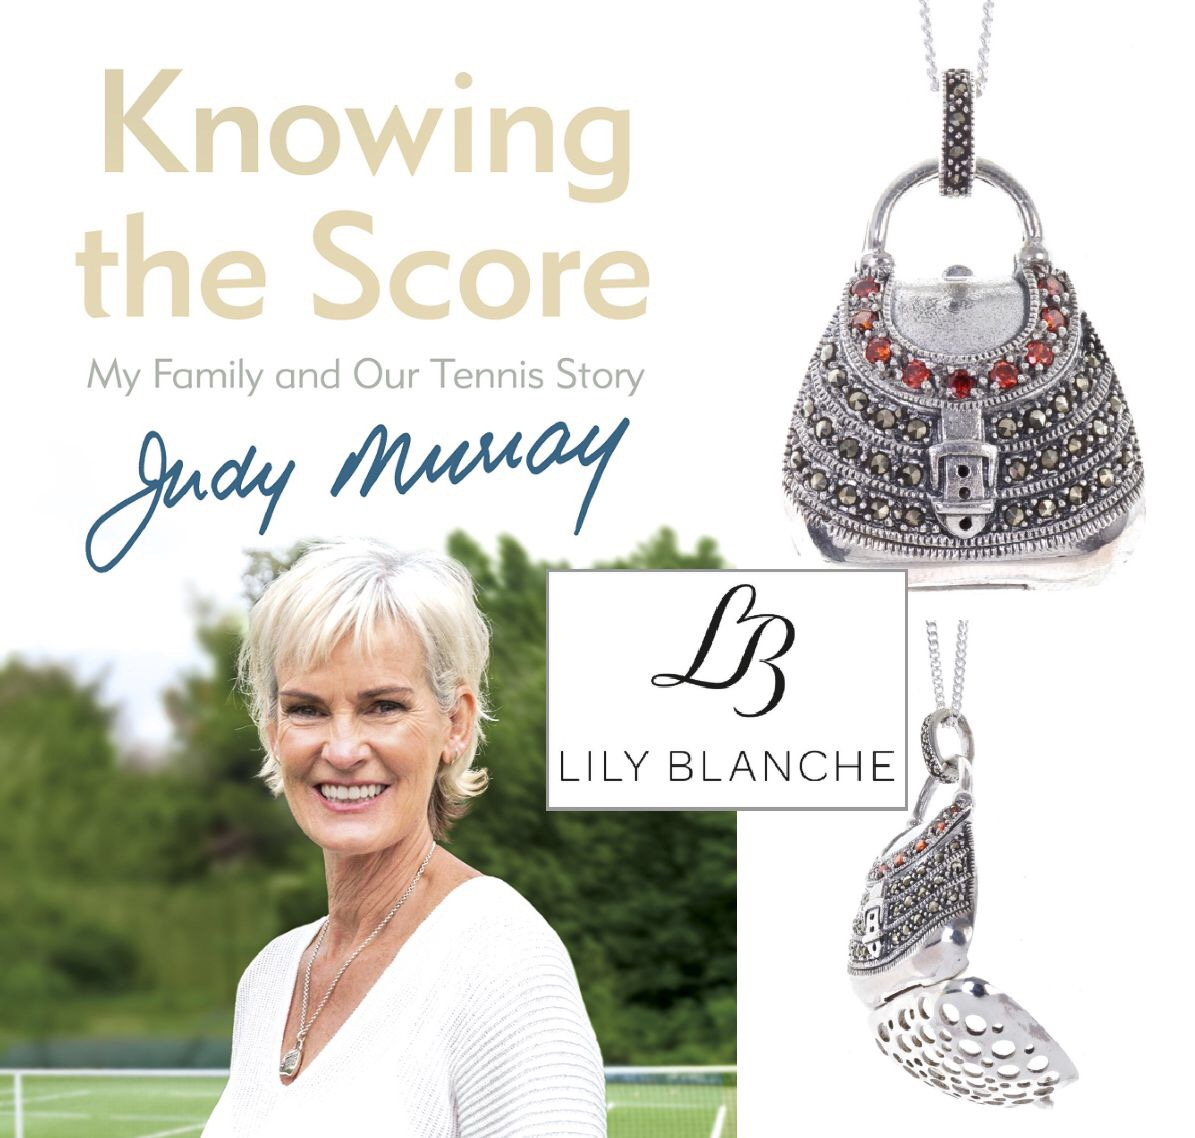 Knowing the Score by Judy Murray, 2018